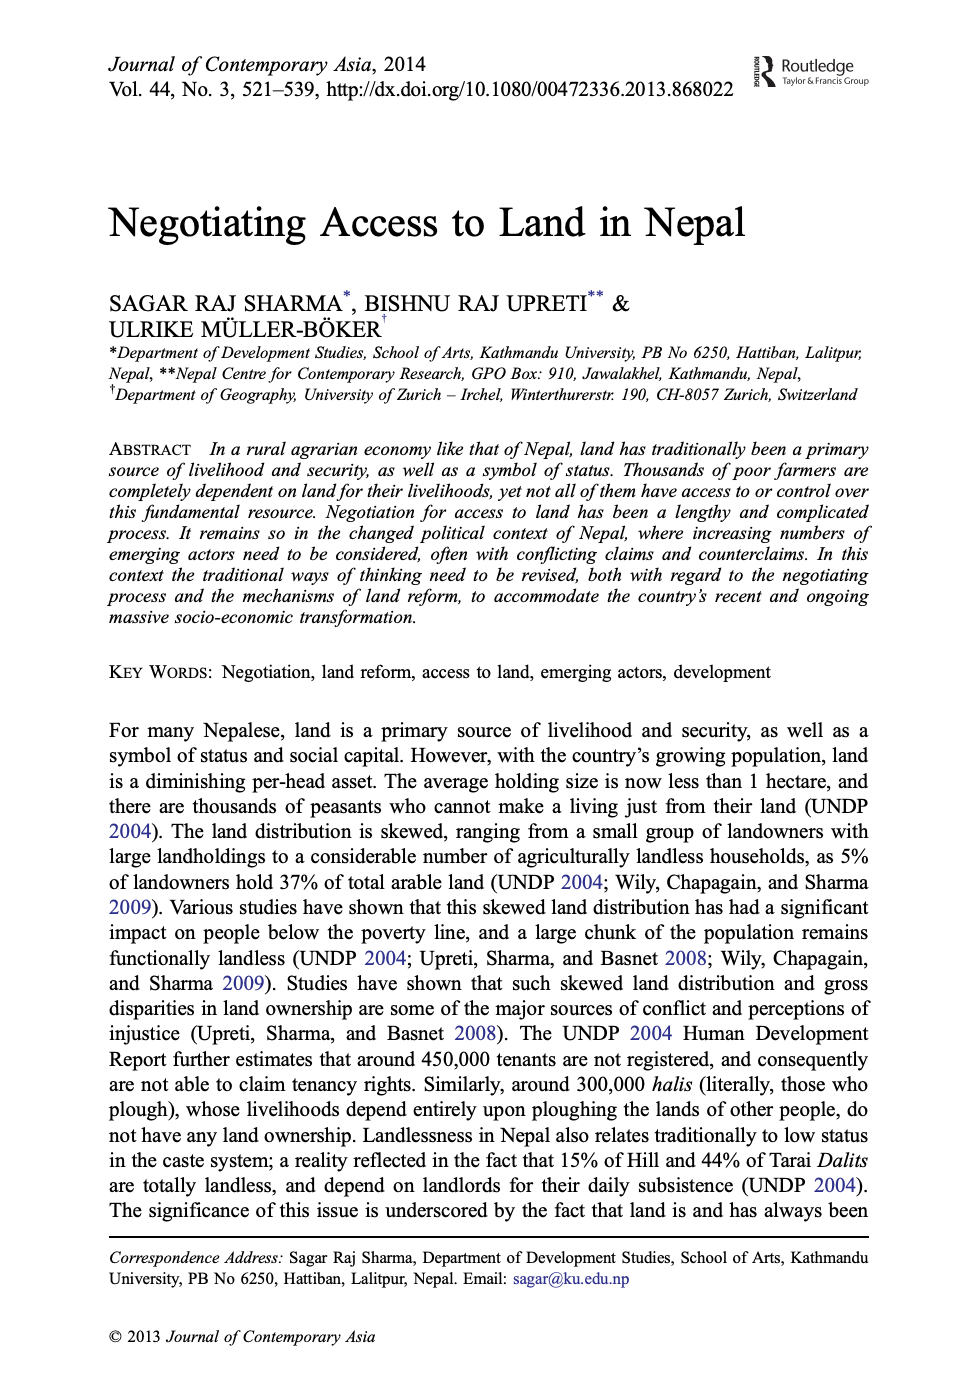 Negotiating Access to Land in Nepal